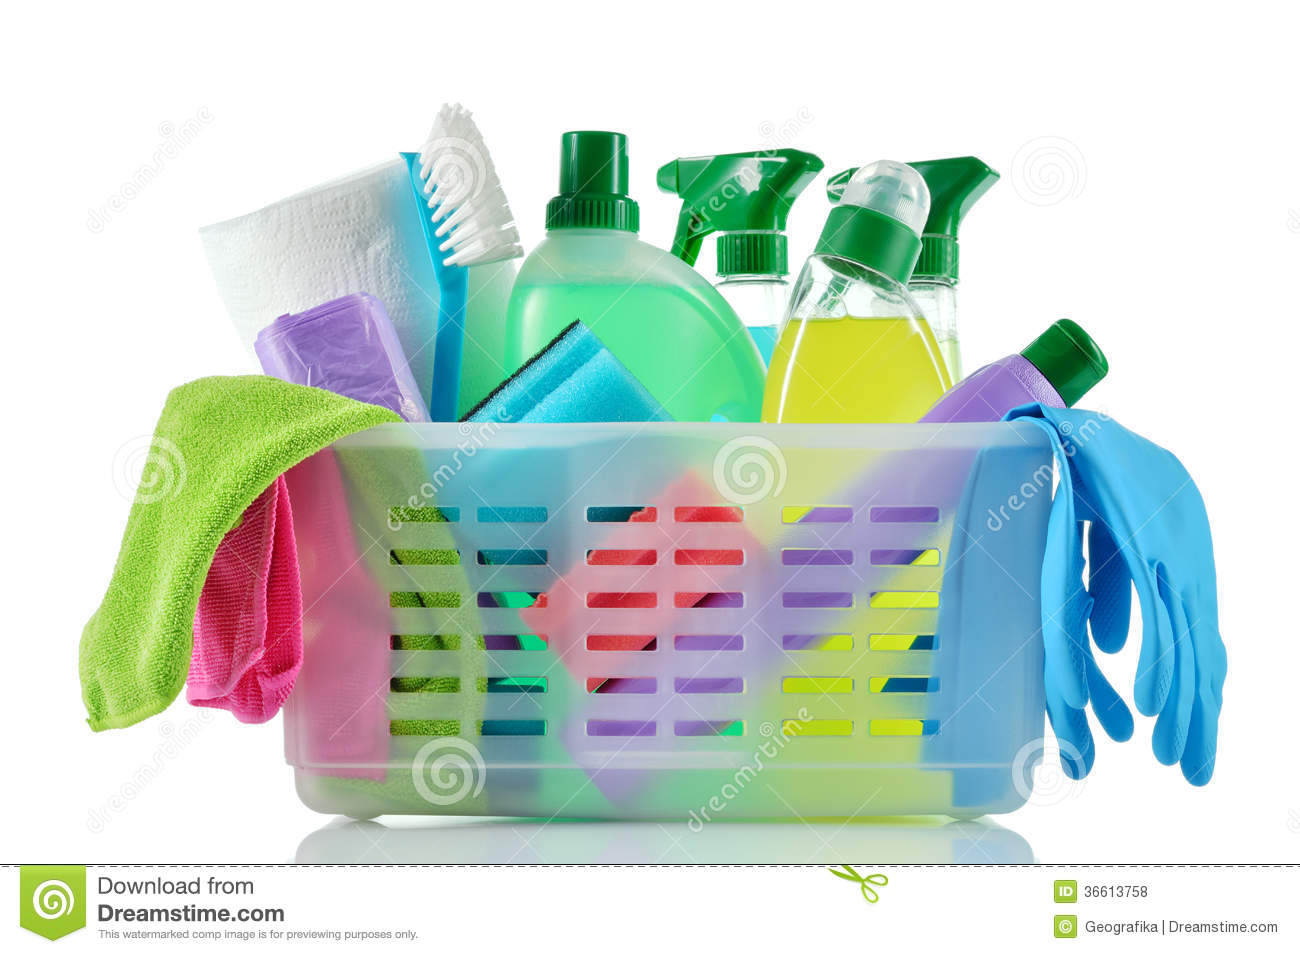 Background Dapur Cleaning Products And Supplies In A Basket. Stock Photo